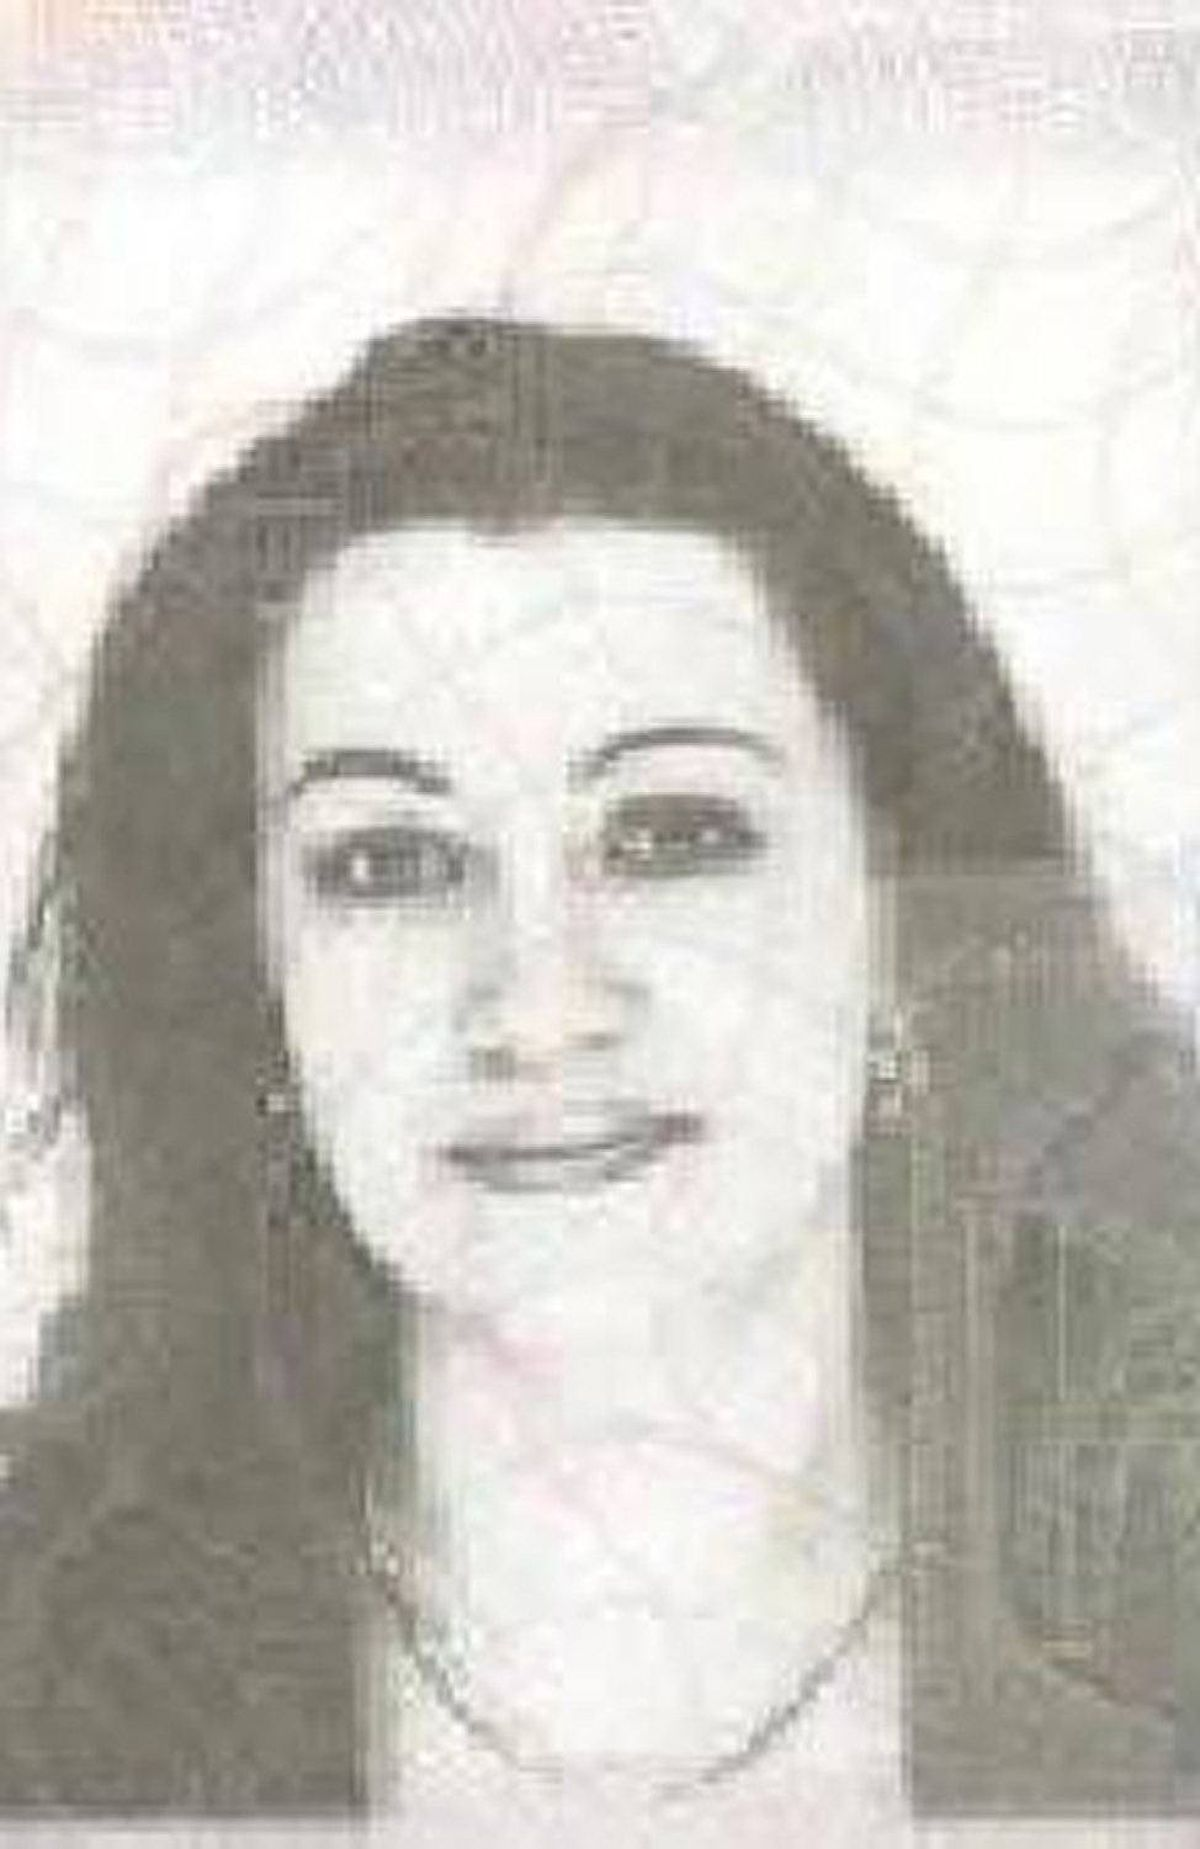 Krisztina Csaszar, 31, is Jozsef Domotor's wife and Ferenc's sister-in-law.